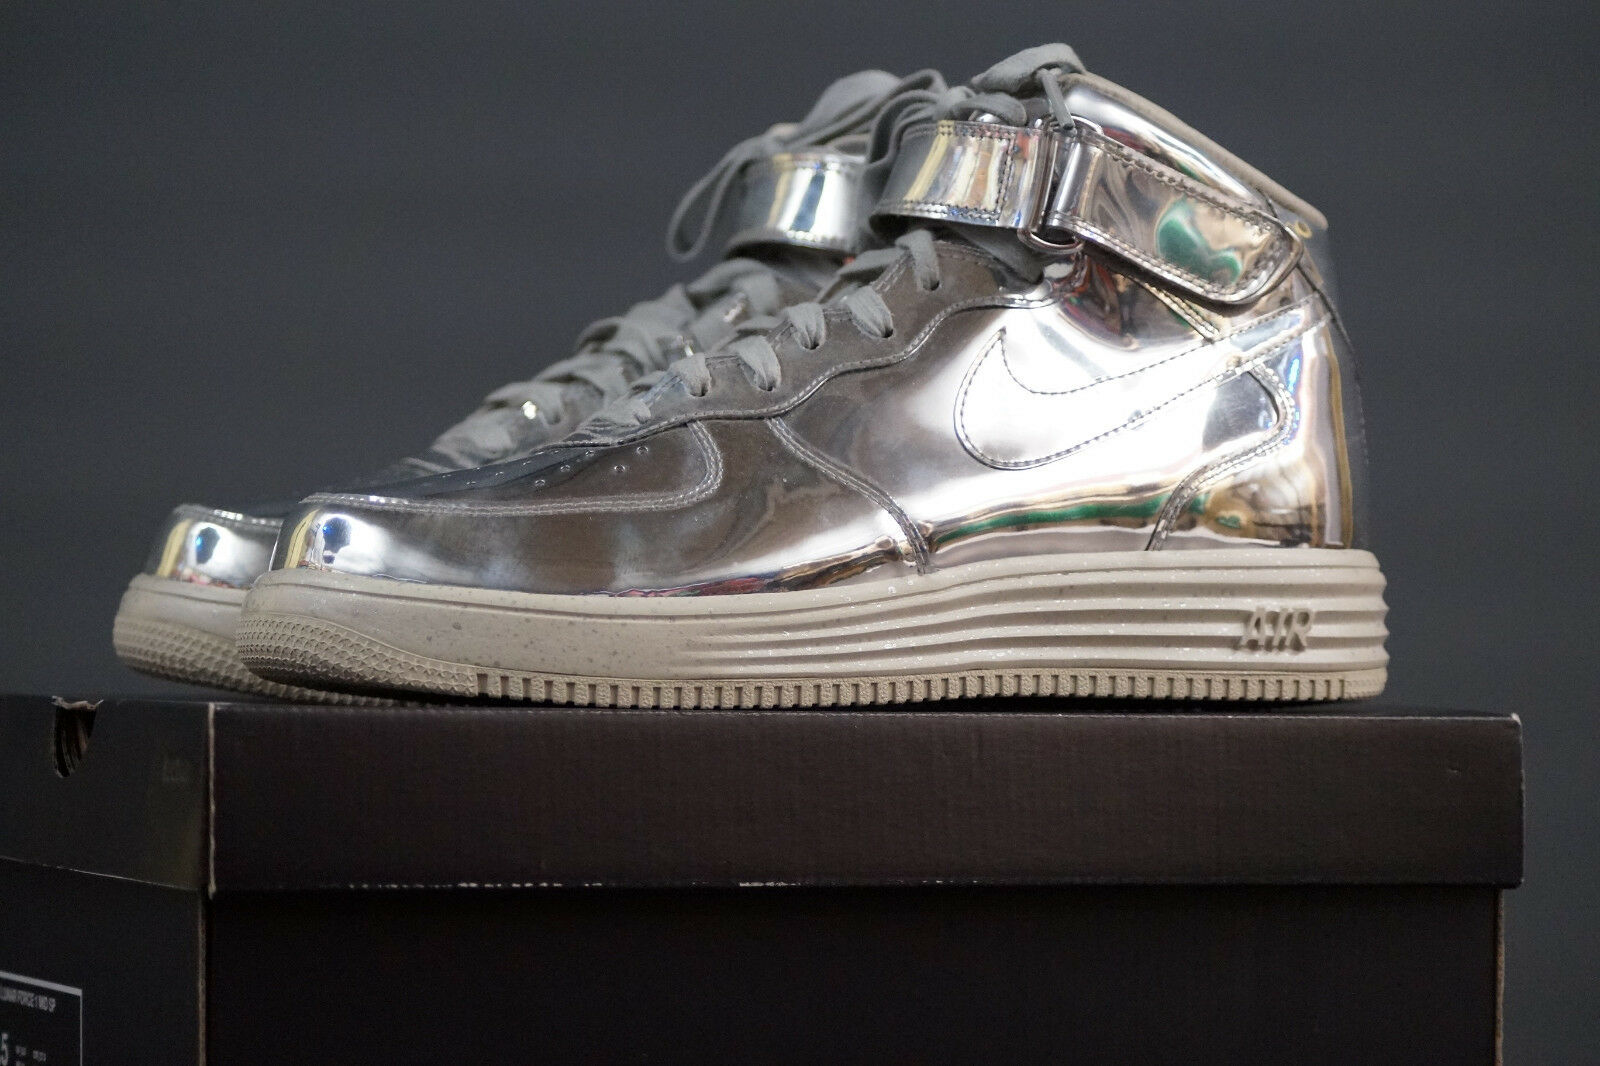 Nike Lunar Force 1 Mid SP Release 2013 UE 43 uk.8, 5 Chrome Metallic 652849 092